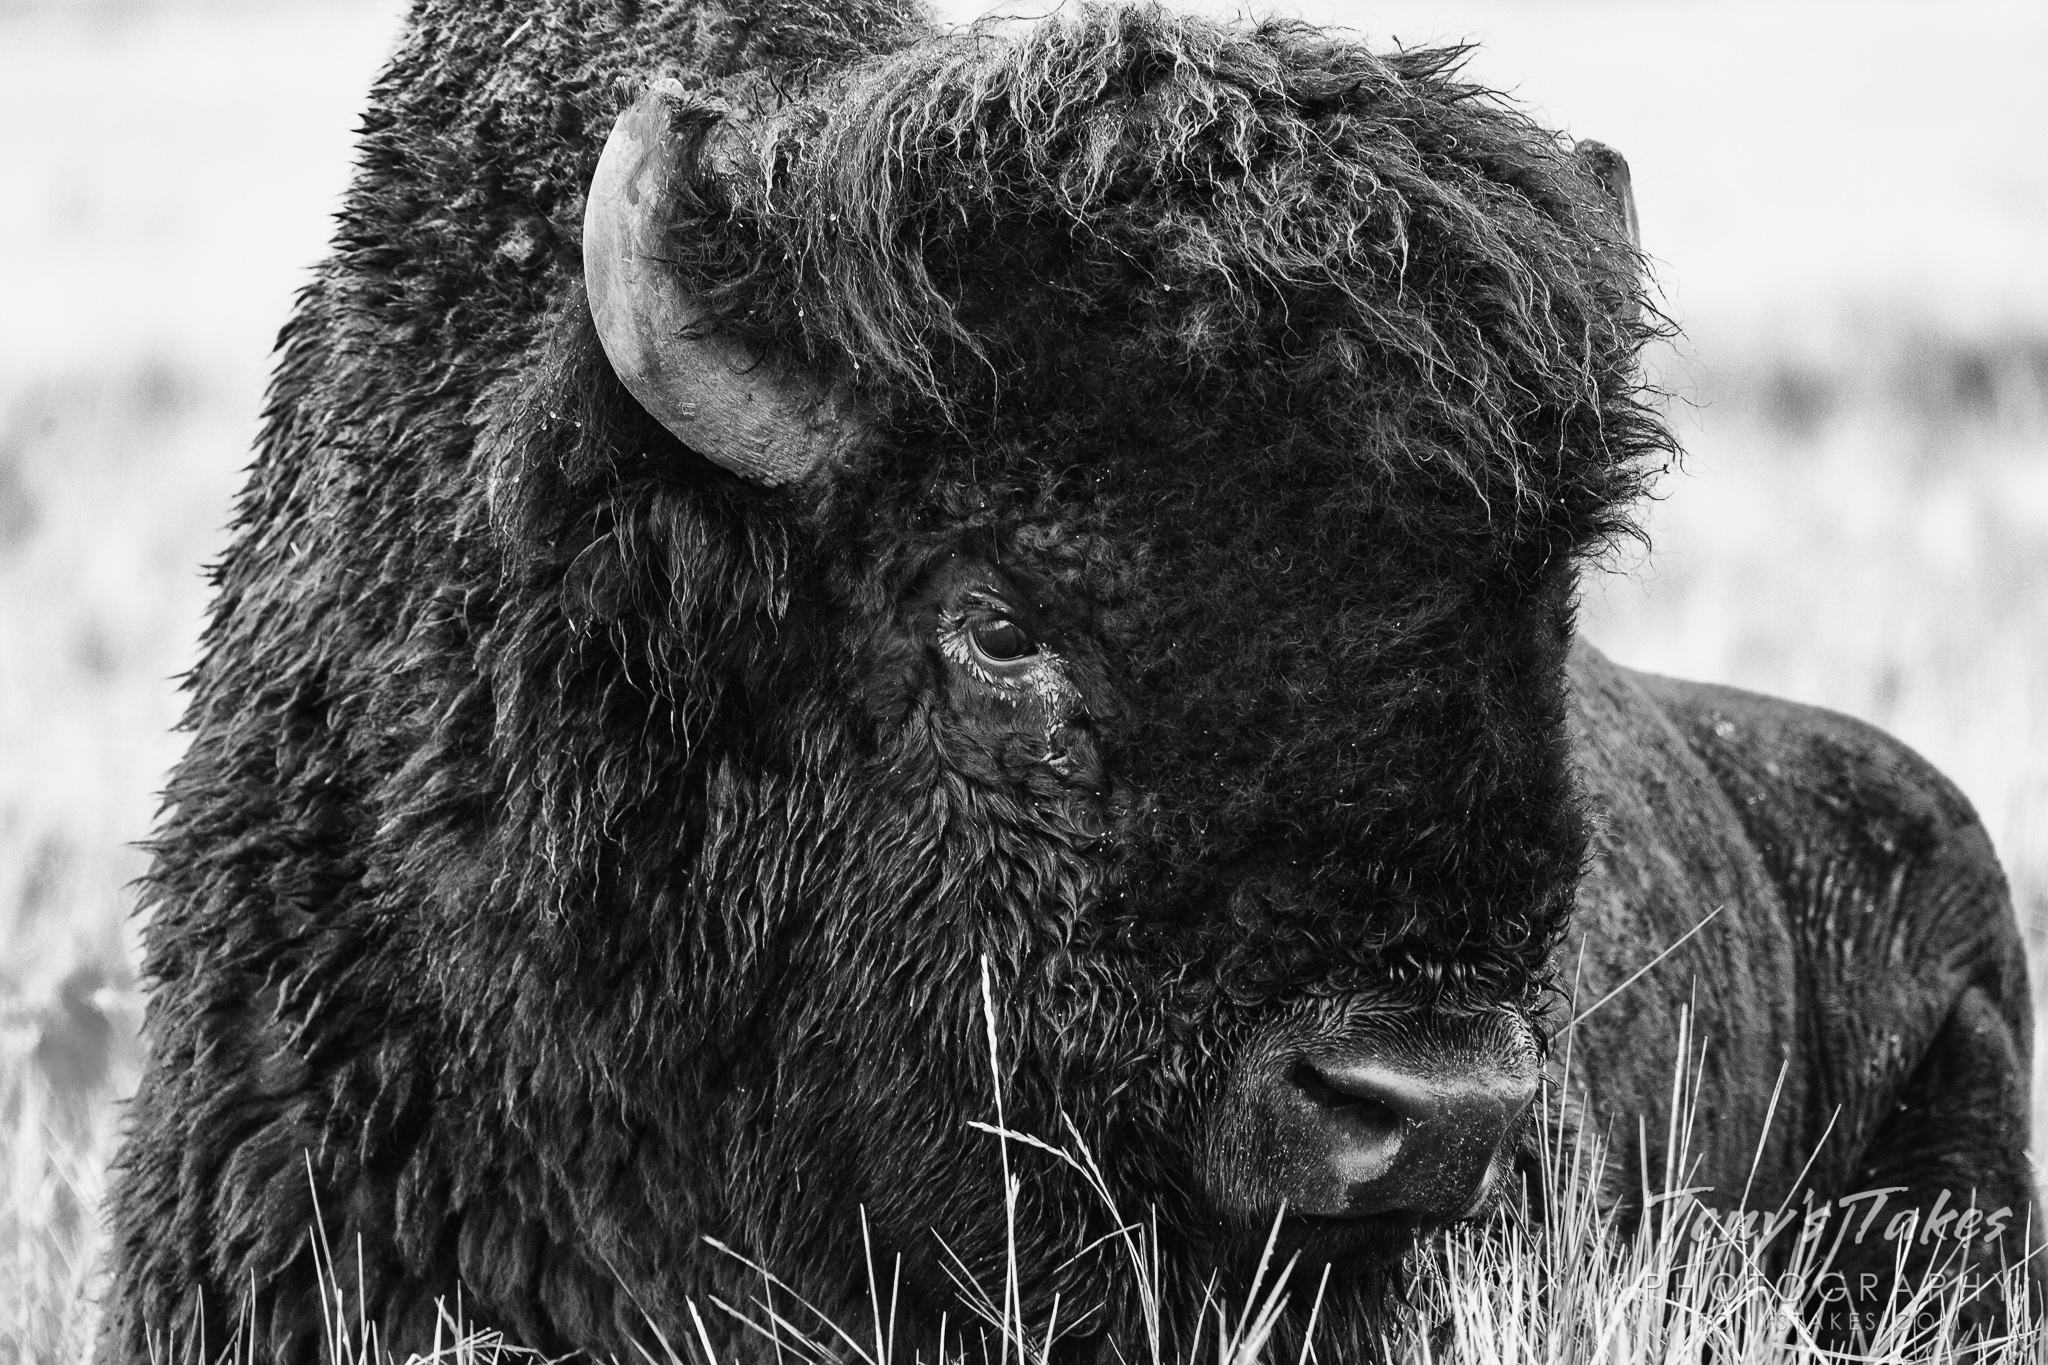 The national mammal of the United States in black and white for National Bison Day